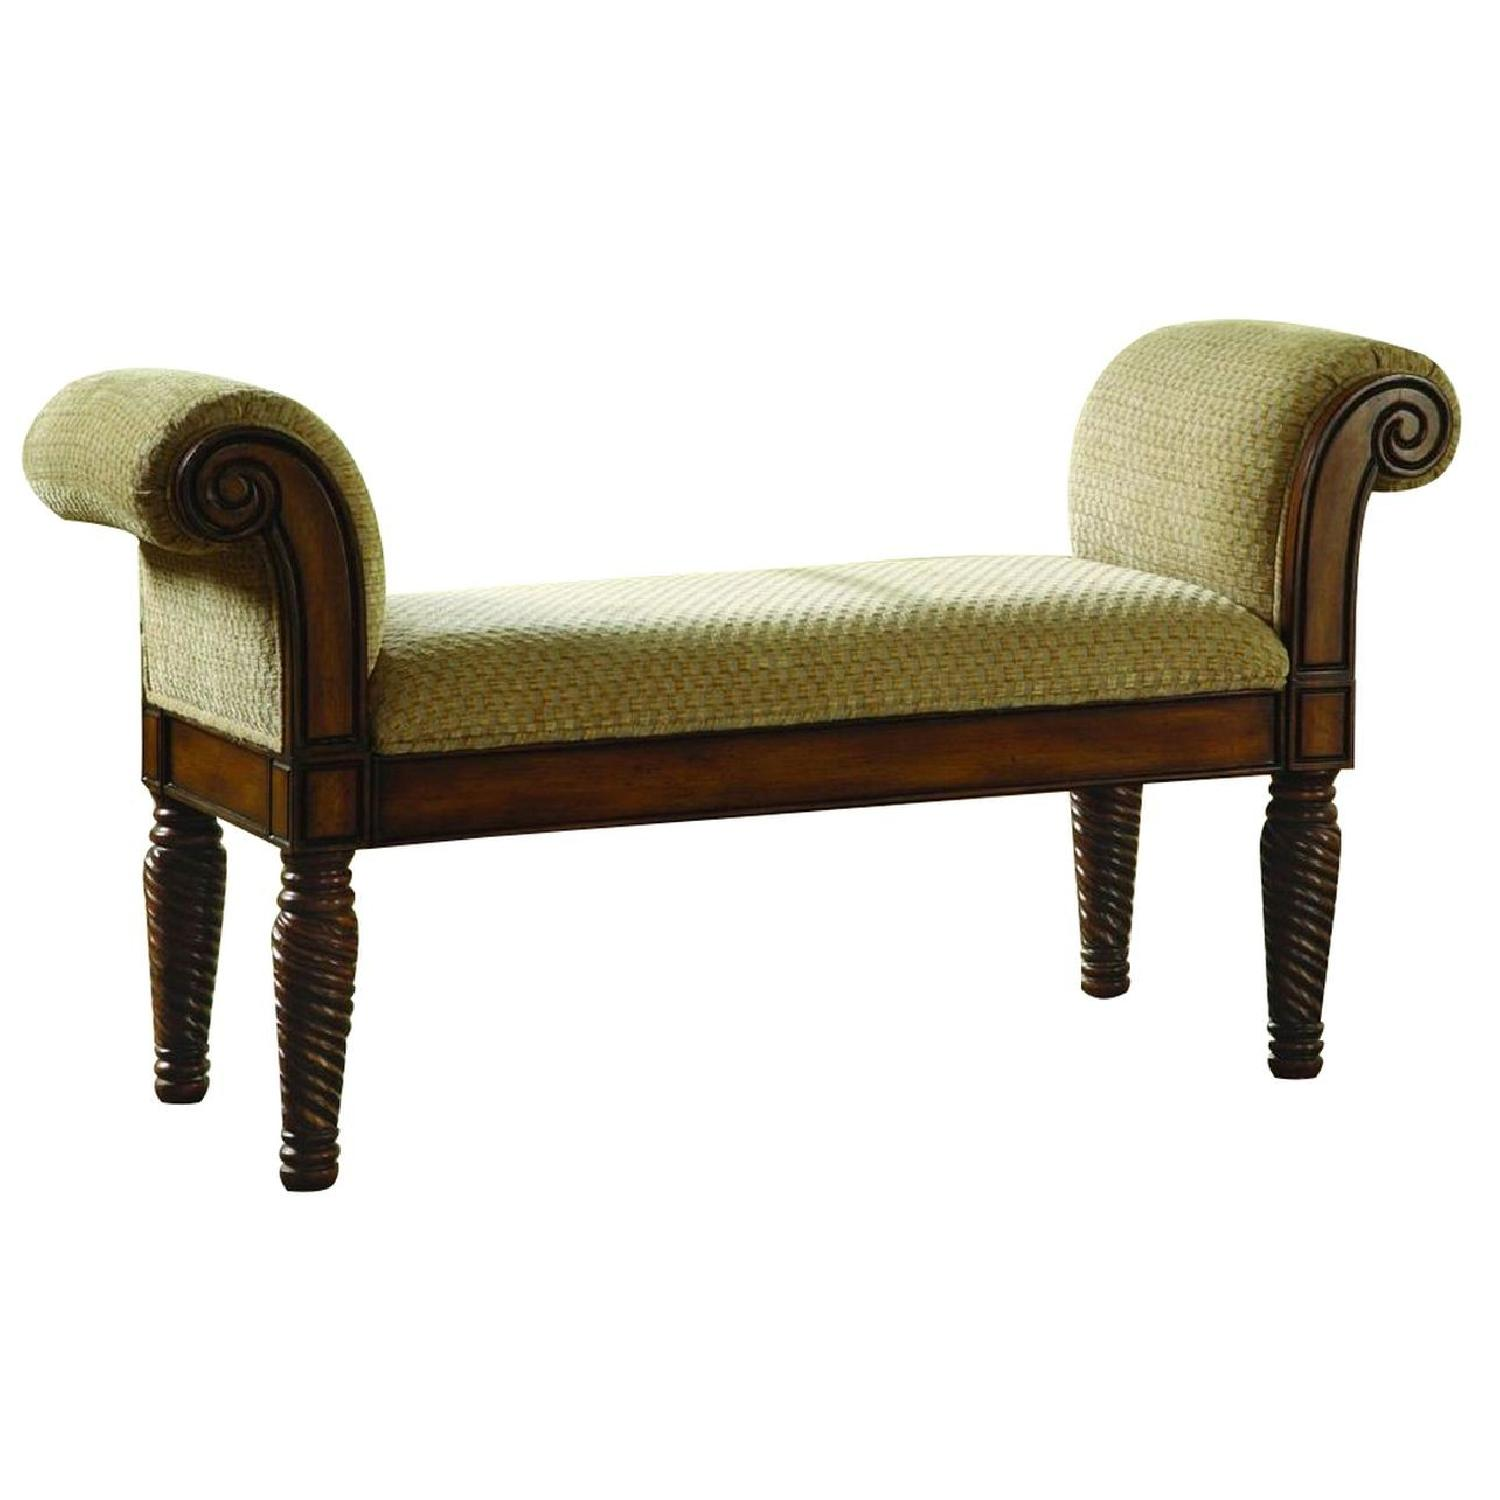 Traditional Style Bench Upholstered in Camel Brown Chenille - image-0